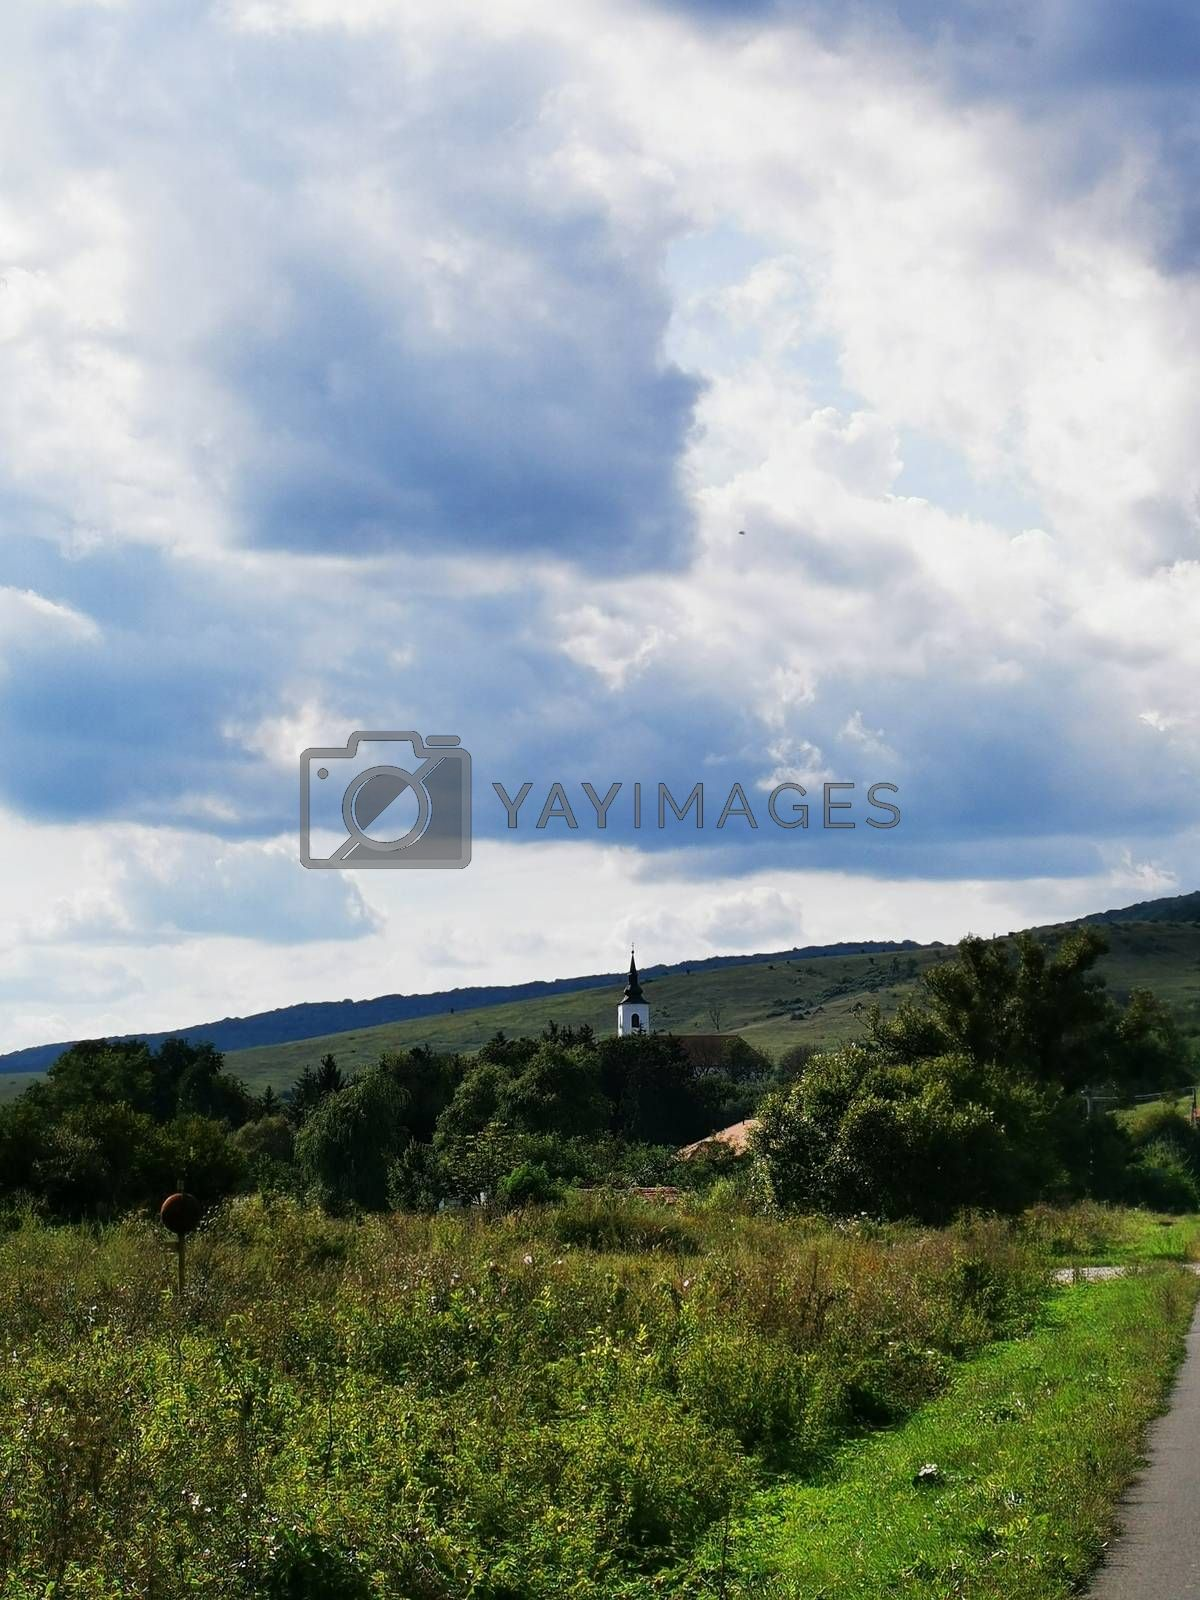 Royalty free image of Near Aggtelek church and overged sky by balage941